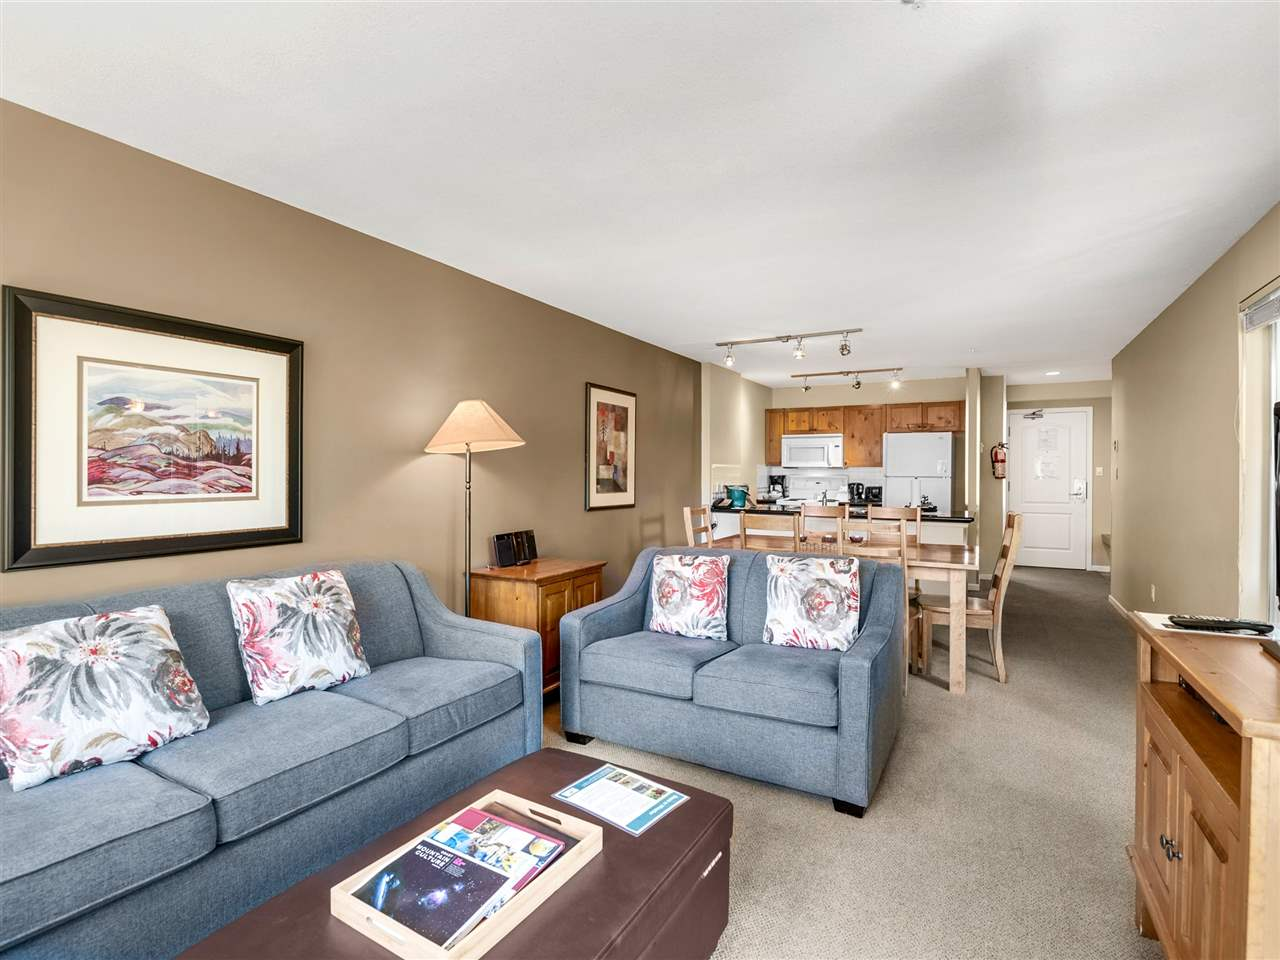 410 4314 MAIN STREET - Whistler Village Apartment/Condo for sale, 2 Bedrooms (R2506804)